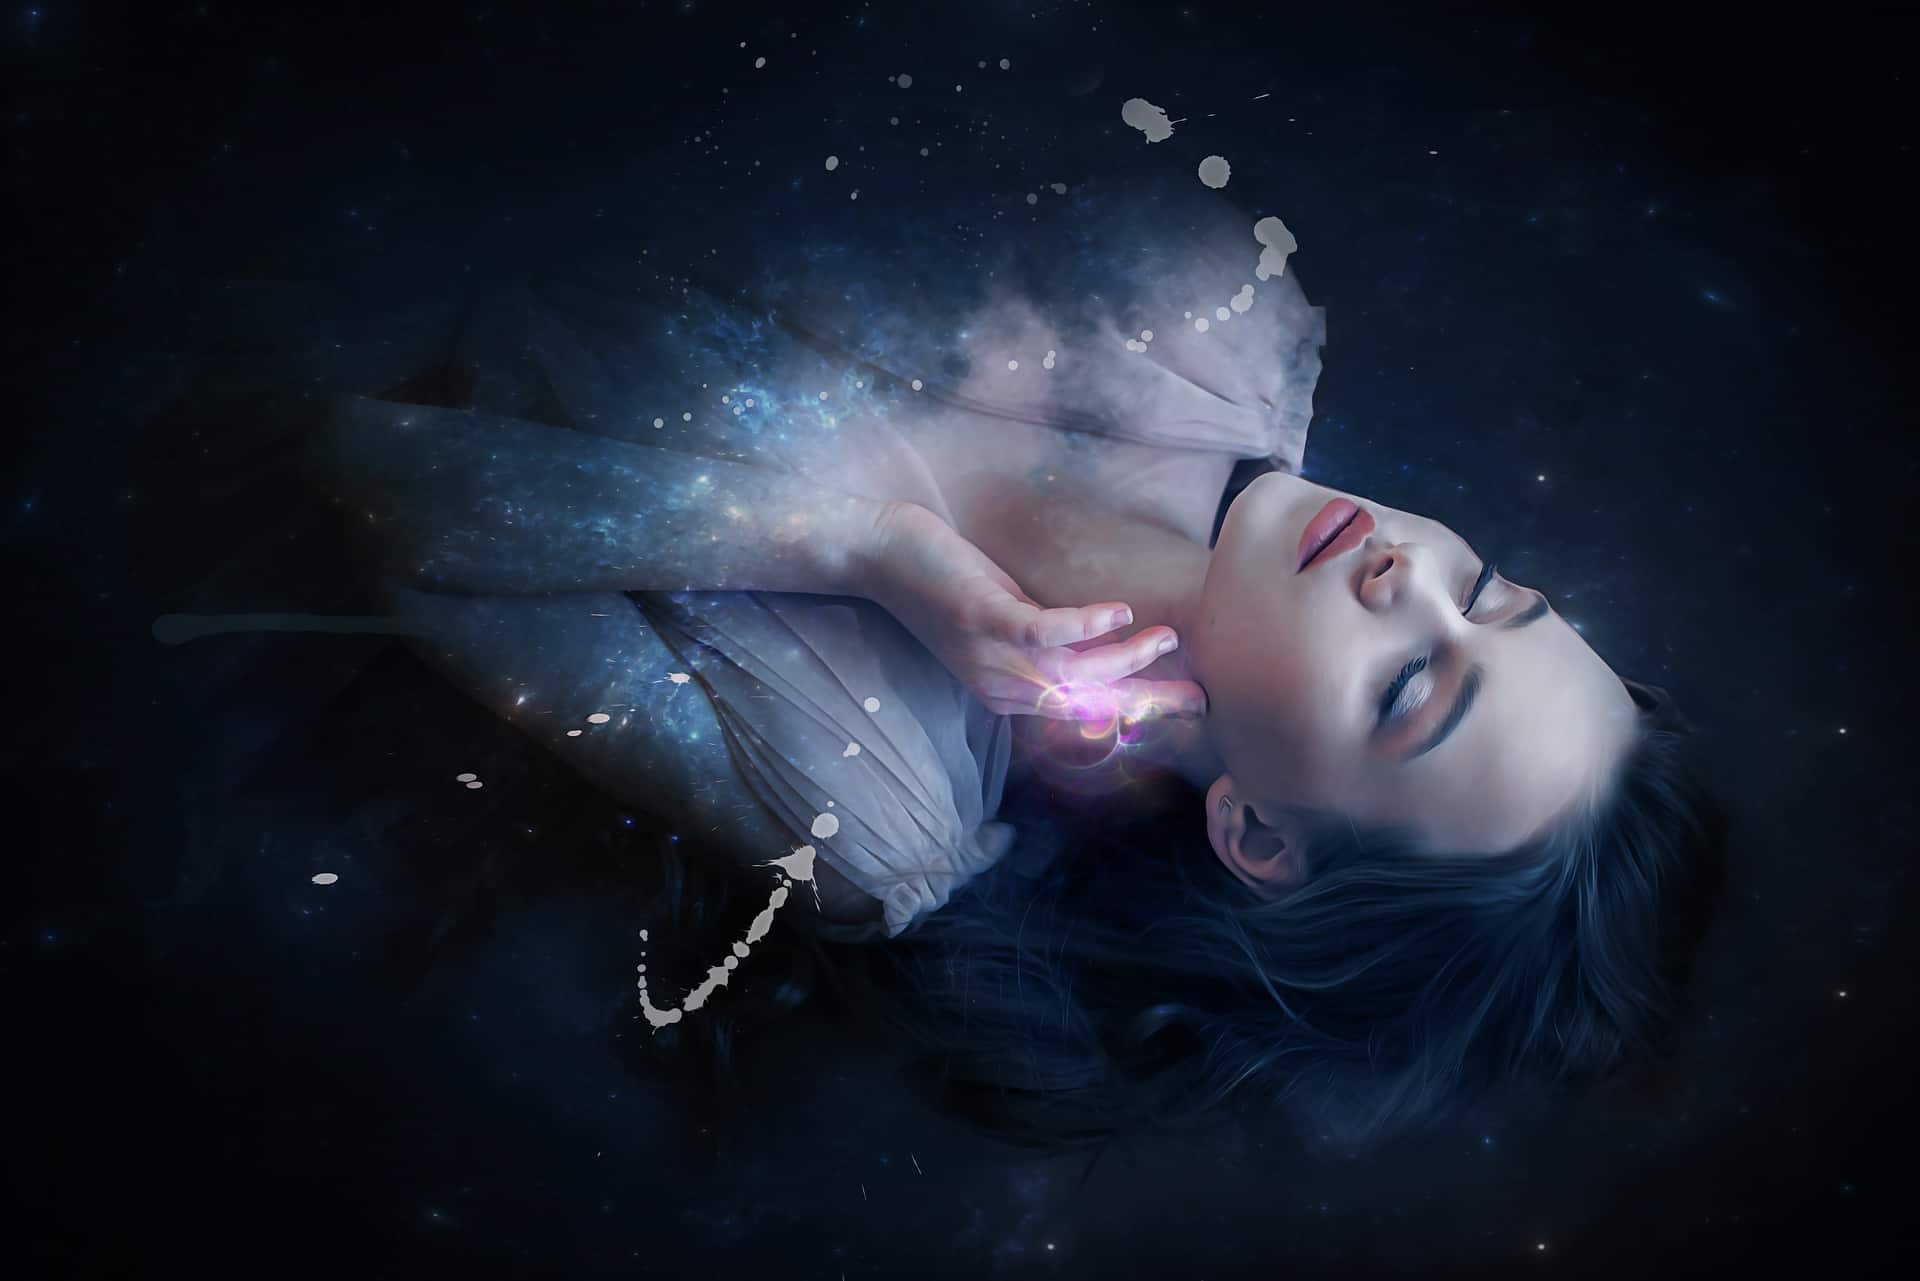 Image of a lucid dreaming woman in water